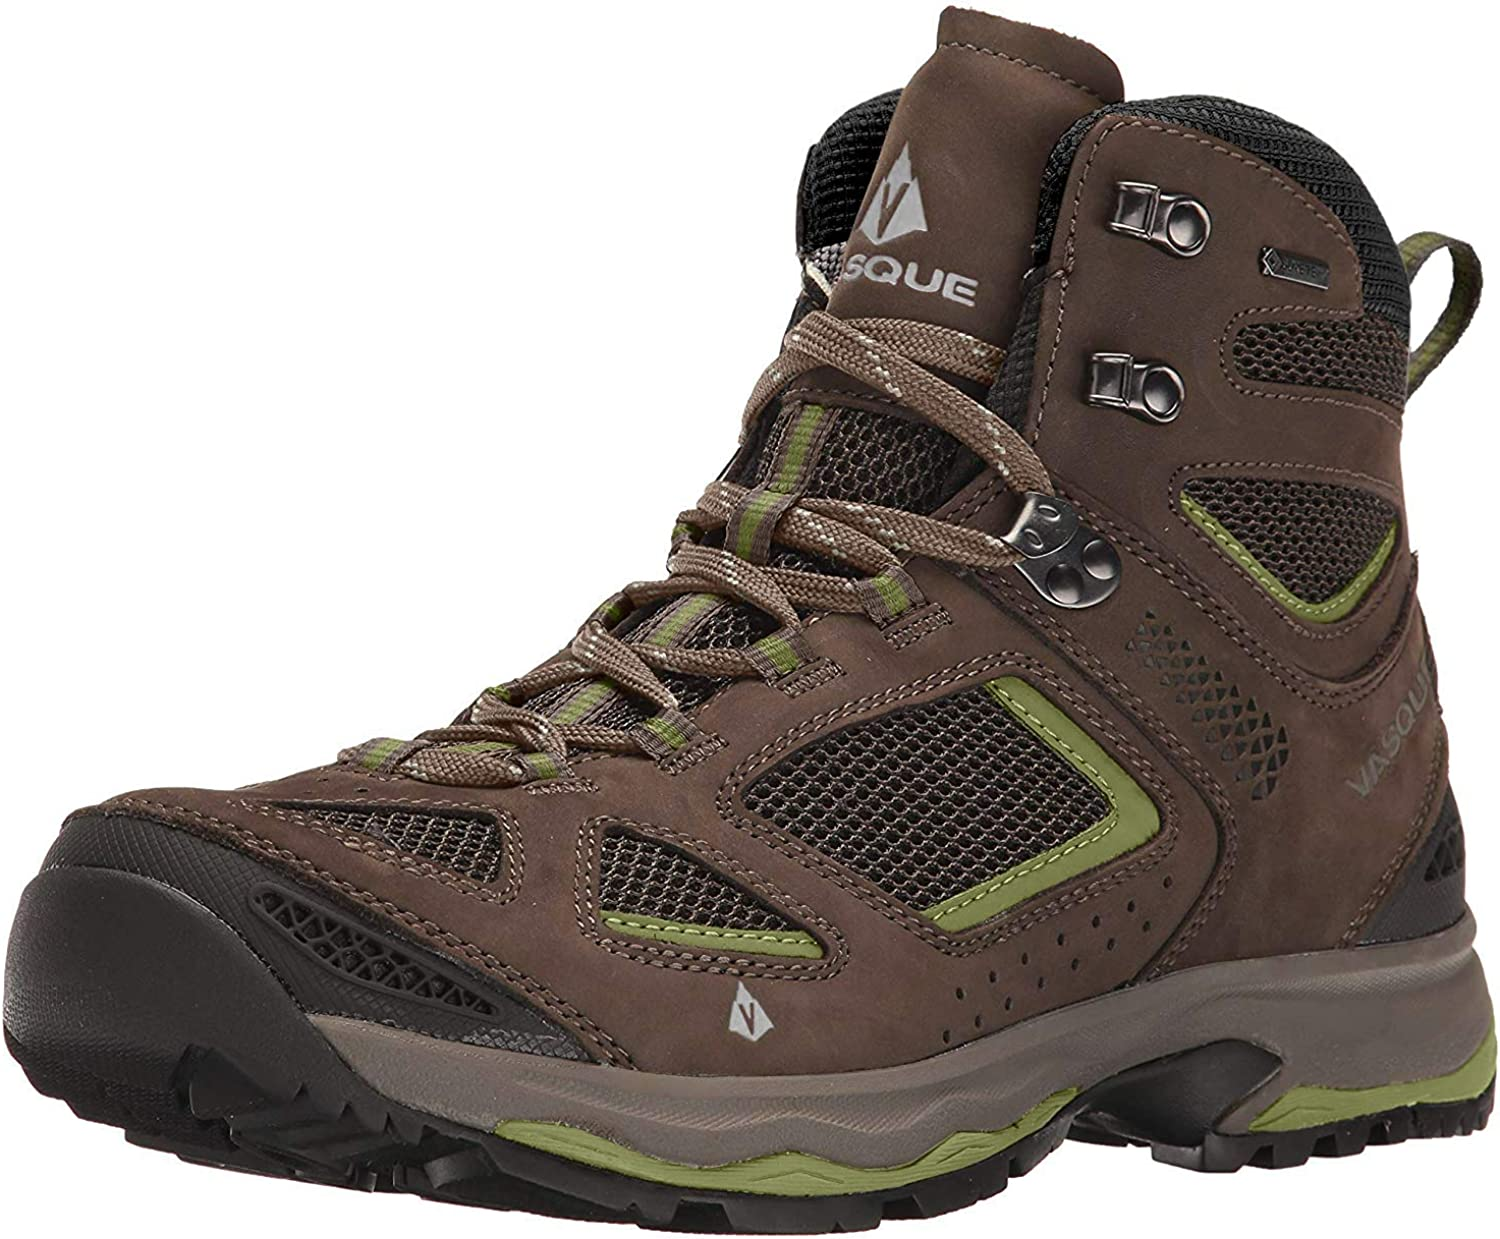 B01F5K03K6 Vasque Men's Breeze Iii GTX Gore-tex Waterproof Breathable Hiking Boot 71FjpQs0yoL